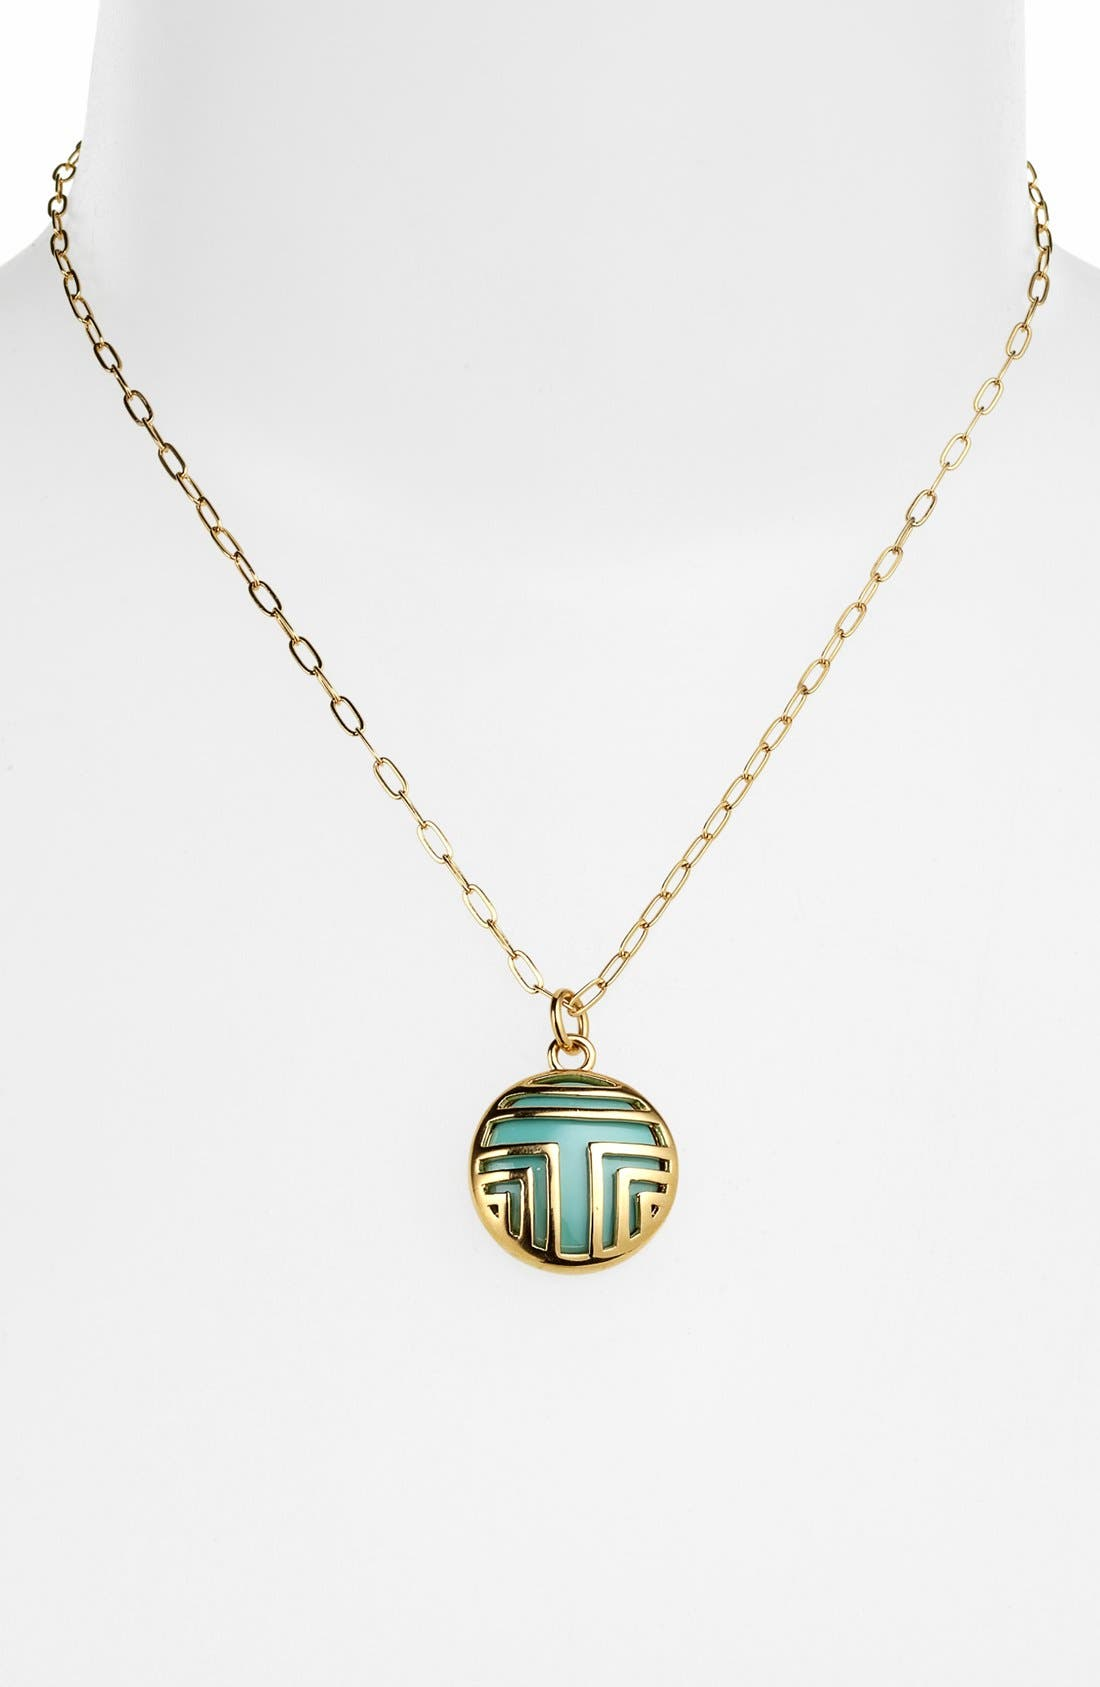 Main Image - Tory Burch 'Color Frete' Layered Logo Pendant Necklace